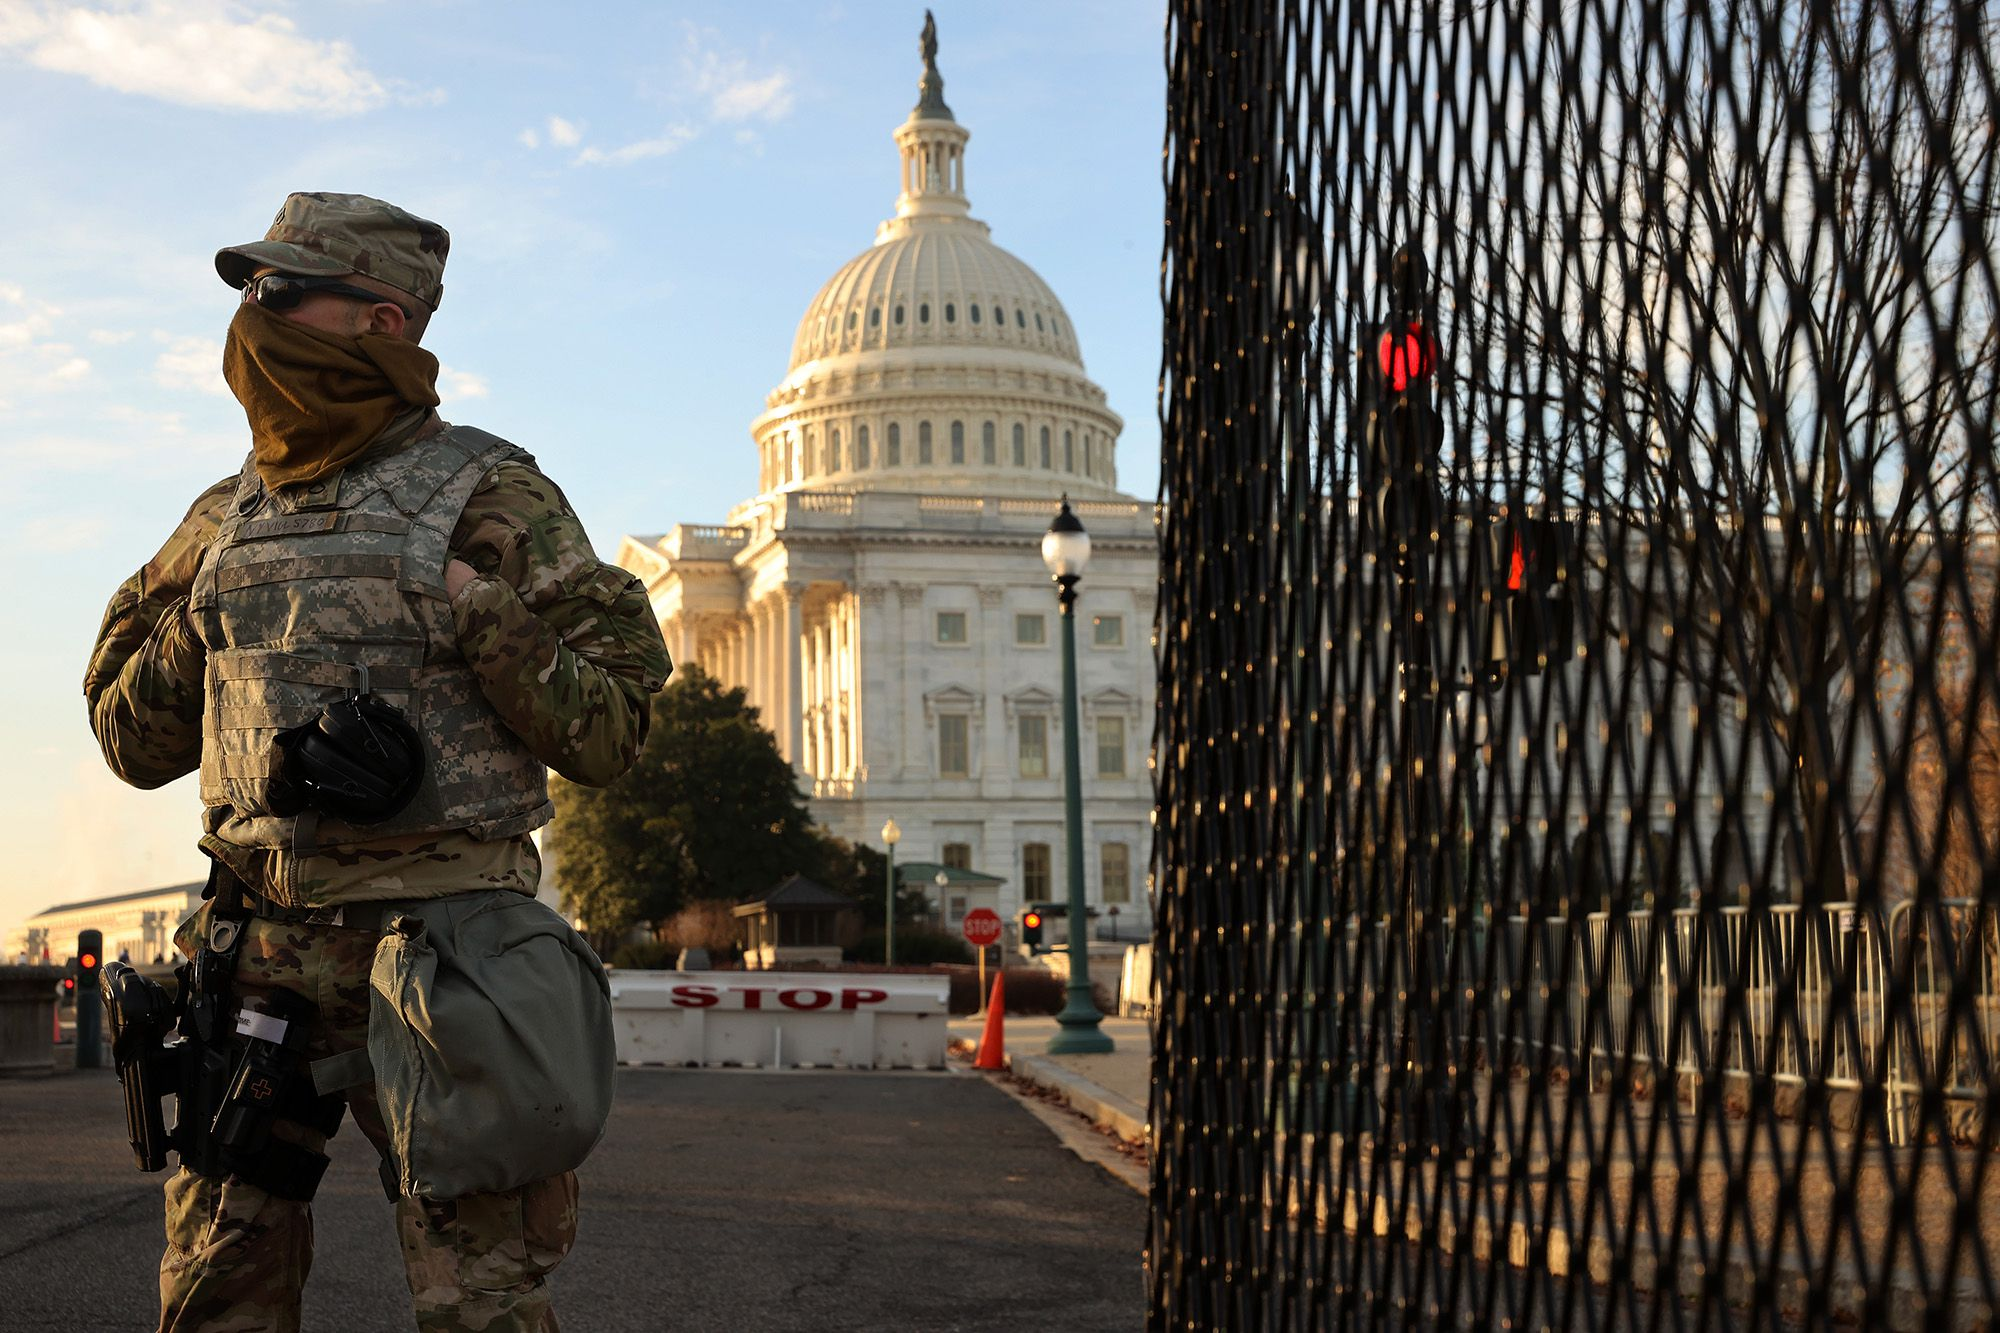 Up to 21,000 National Guard troops now authorized in DC for Biden inauguration